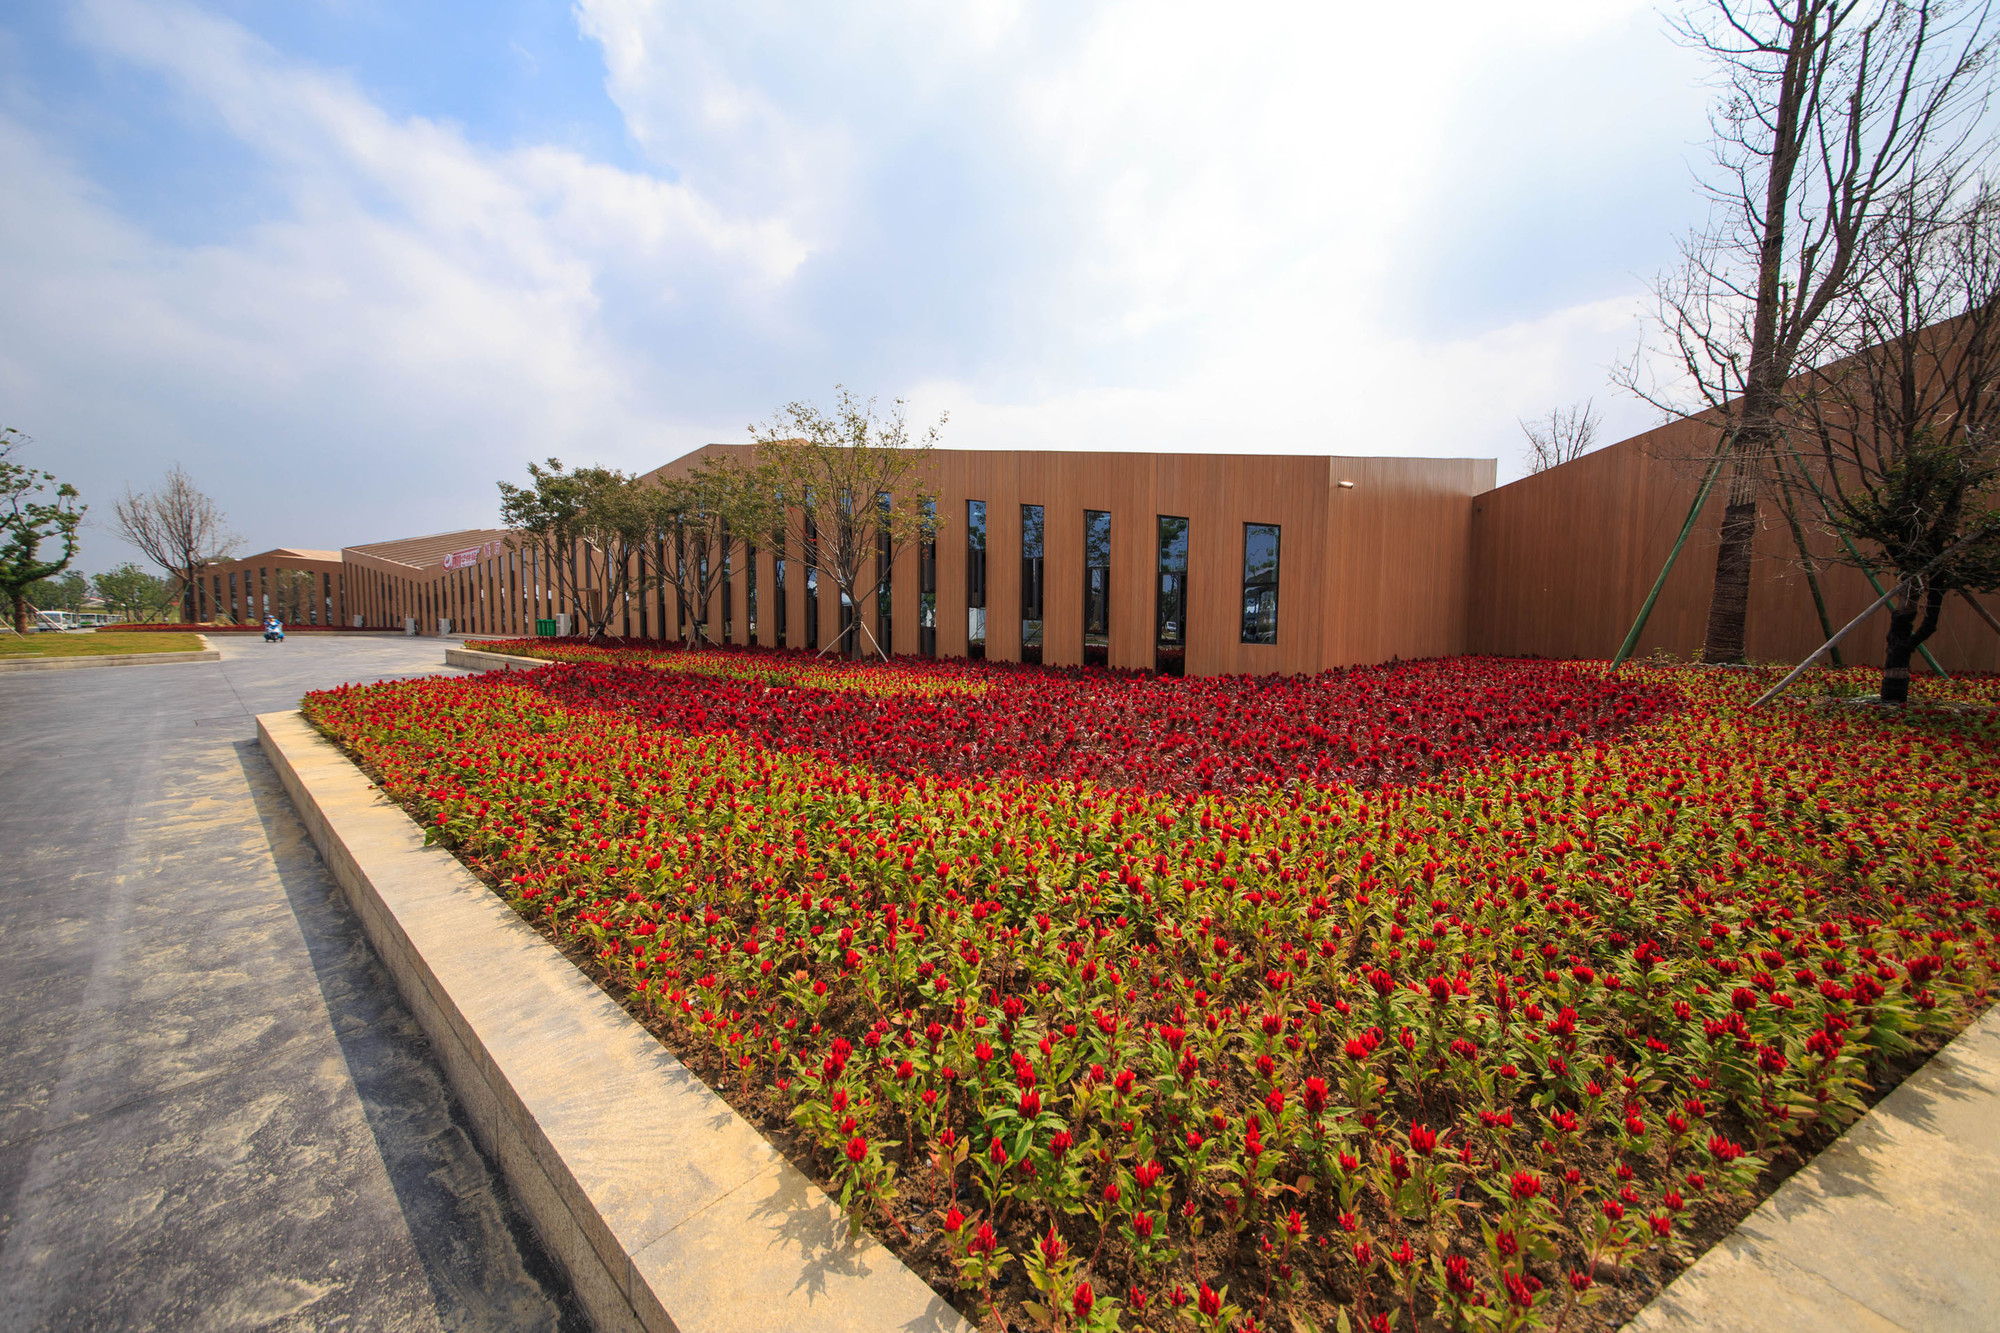 8th Chinese Flower Expo Information Centre / LAB Architecture Studio, © Ryuji Miya